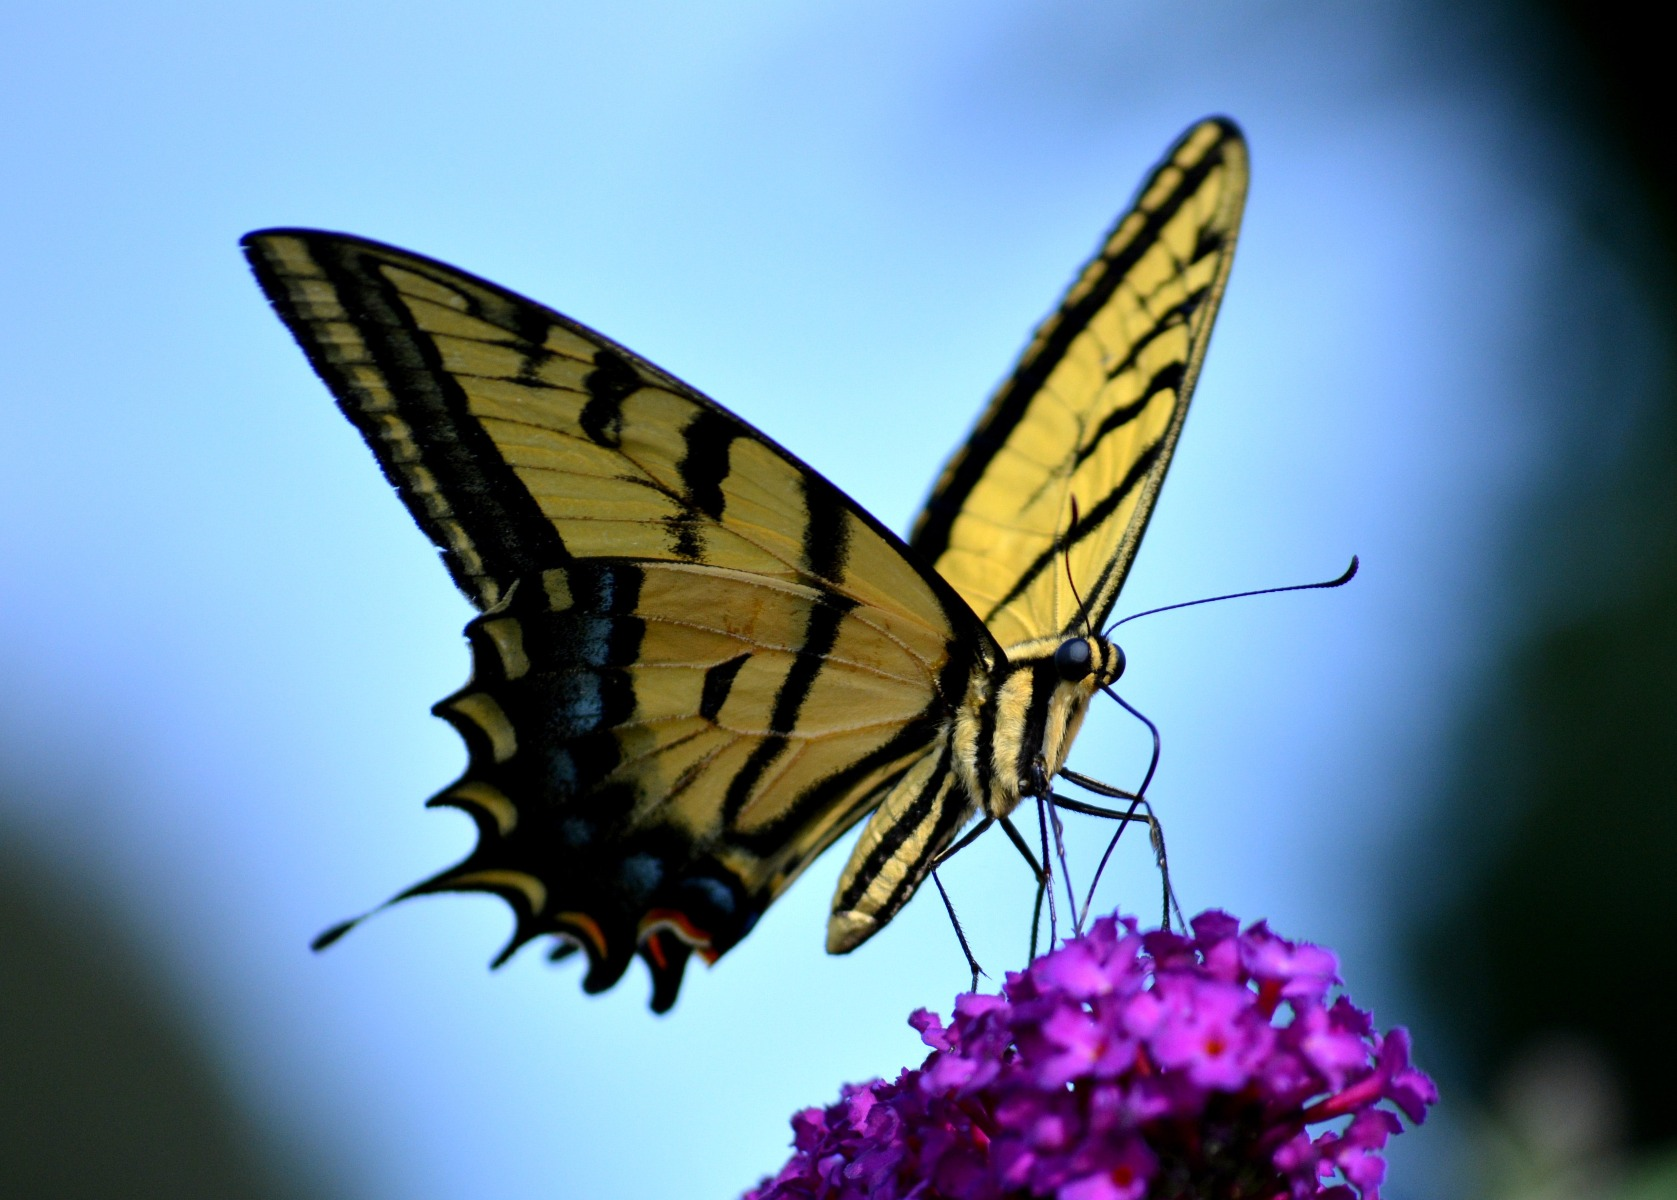 Black and yellow butterfly resting on pink flowers